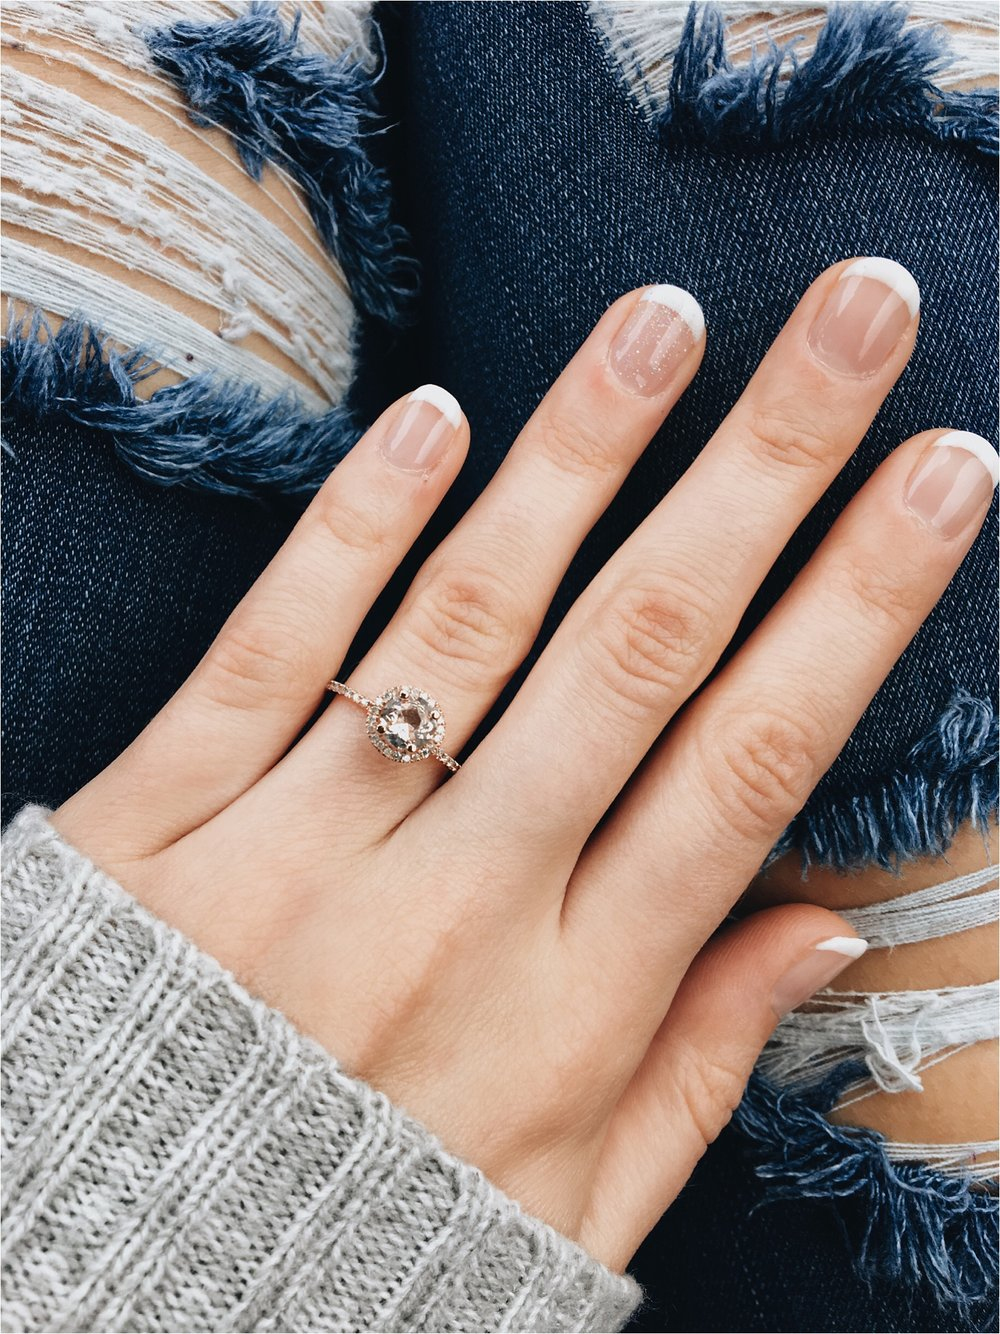 Didn't he pick the most beautiful ring? <3 The center stone is morganite and it's surrounded by tiny diamonds. I also really love the rose gold!